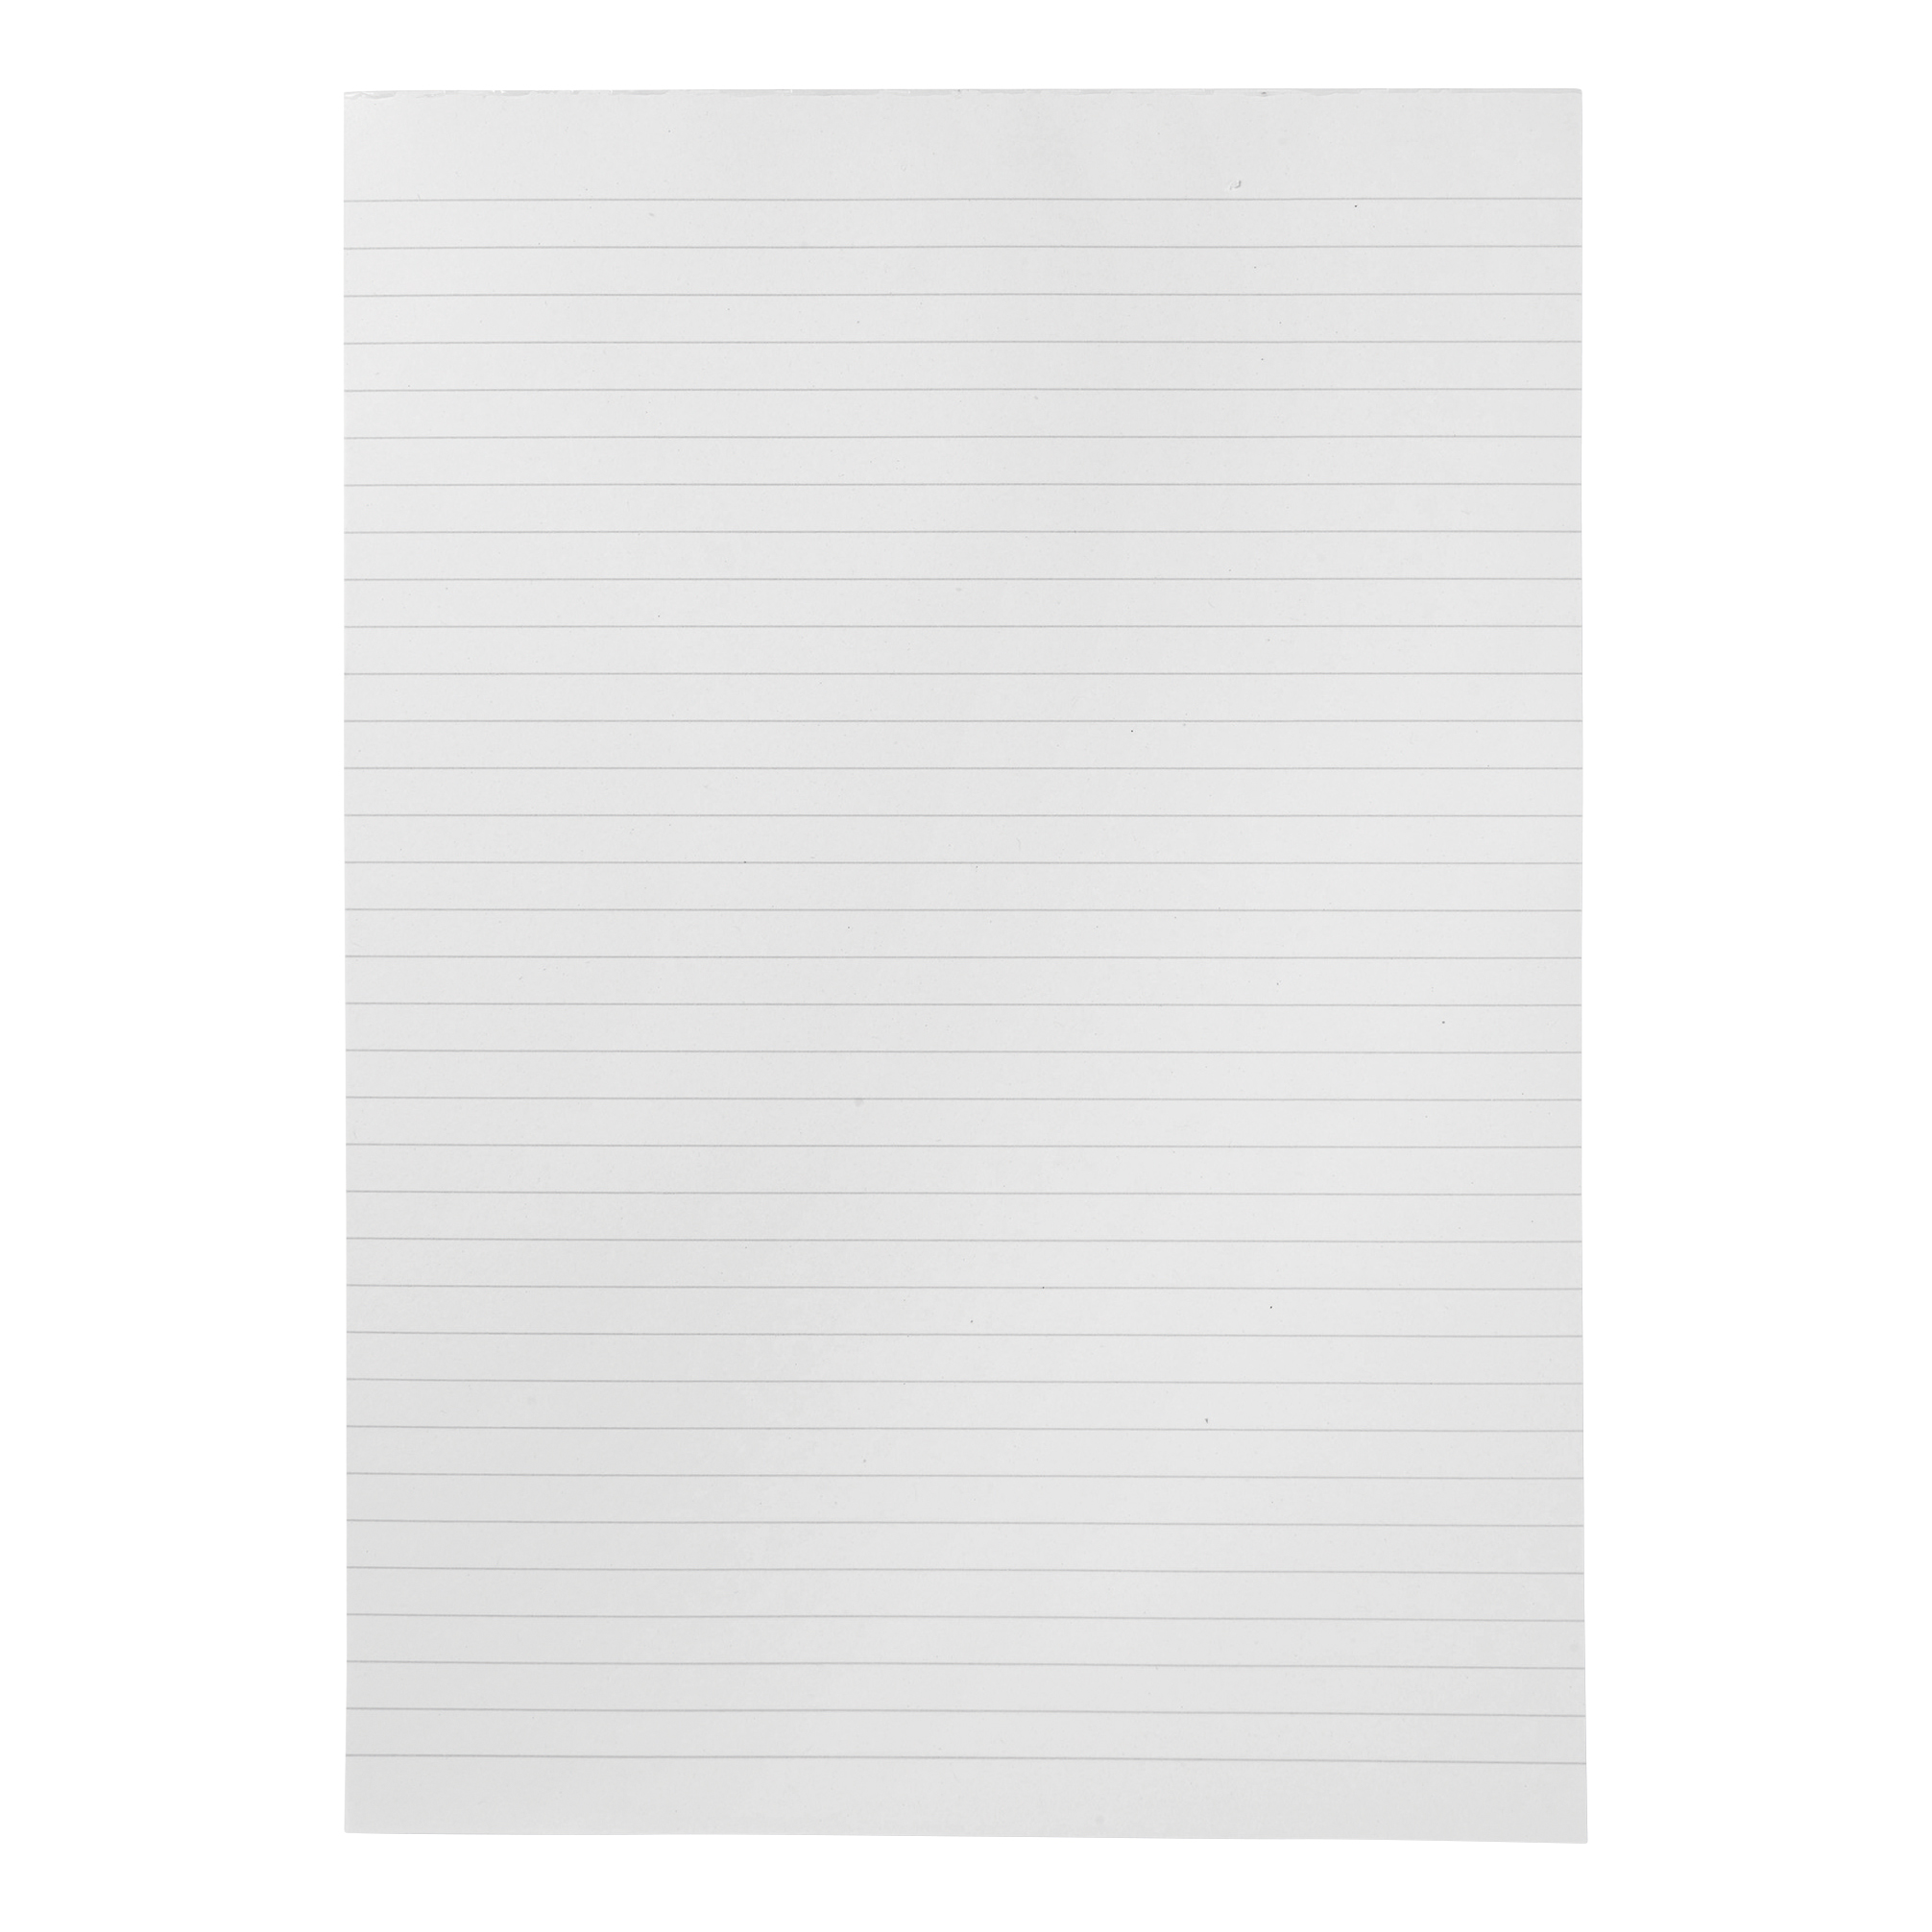 Image for 5 Star Eco Recycled Memo Pad Headbound 70gsm Ruled 160pp A4 White Paper [Pack 10]